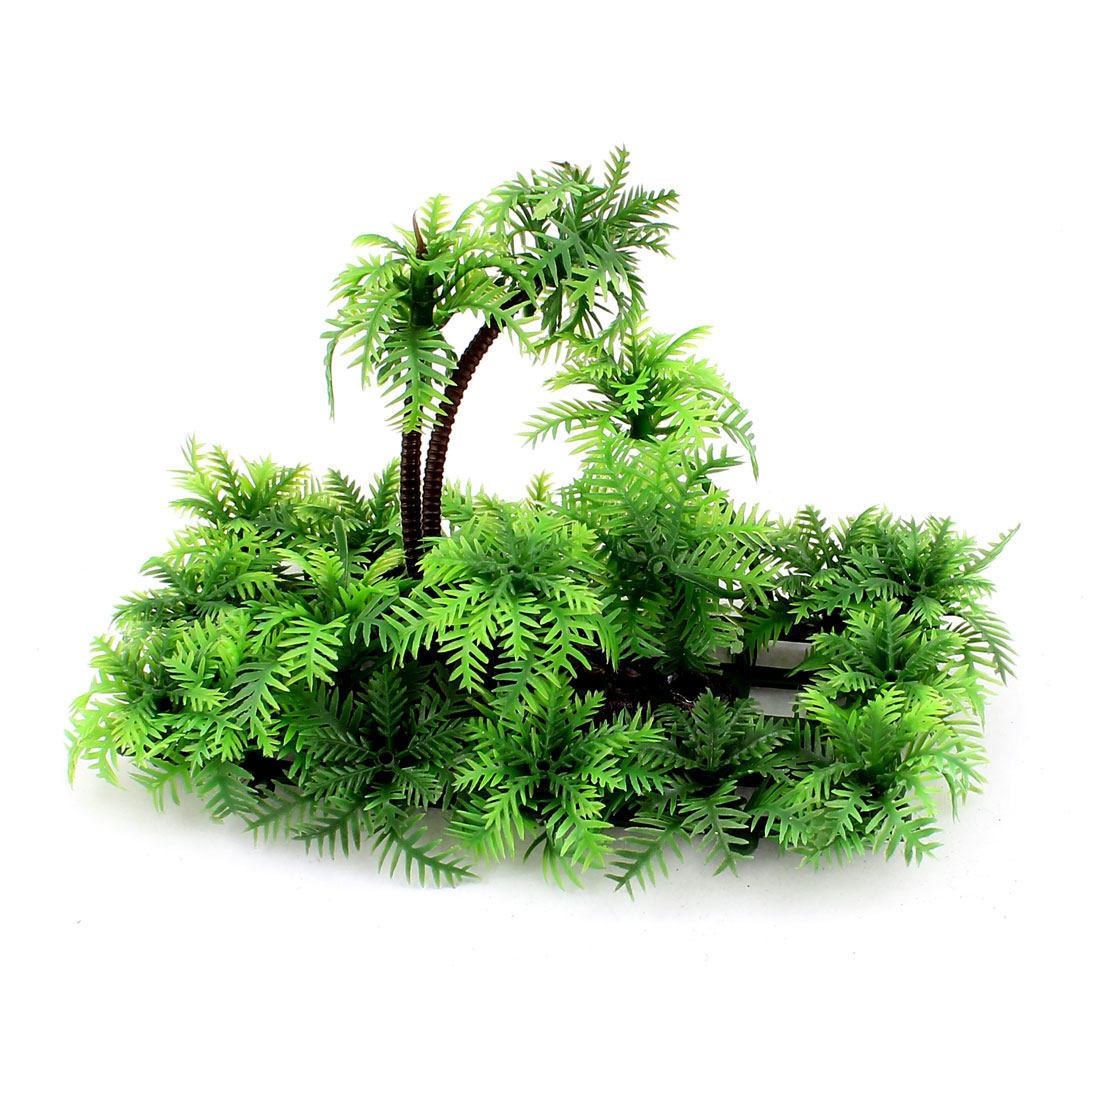 Green Plastic Artificial Aquarium Plant Aquatic Grass Ornament for Fishbowl Fish Tank